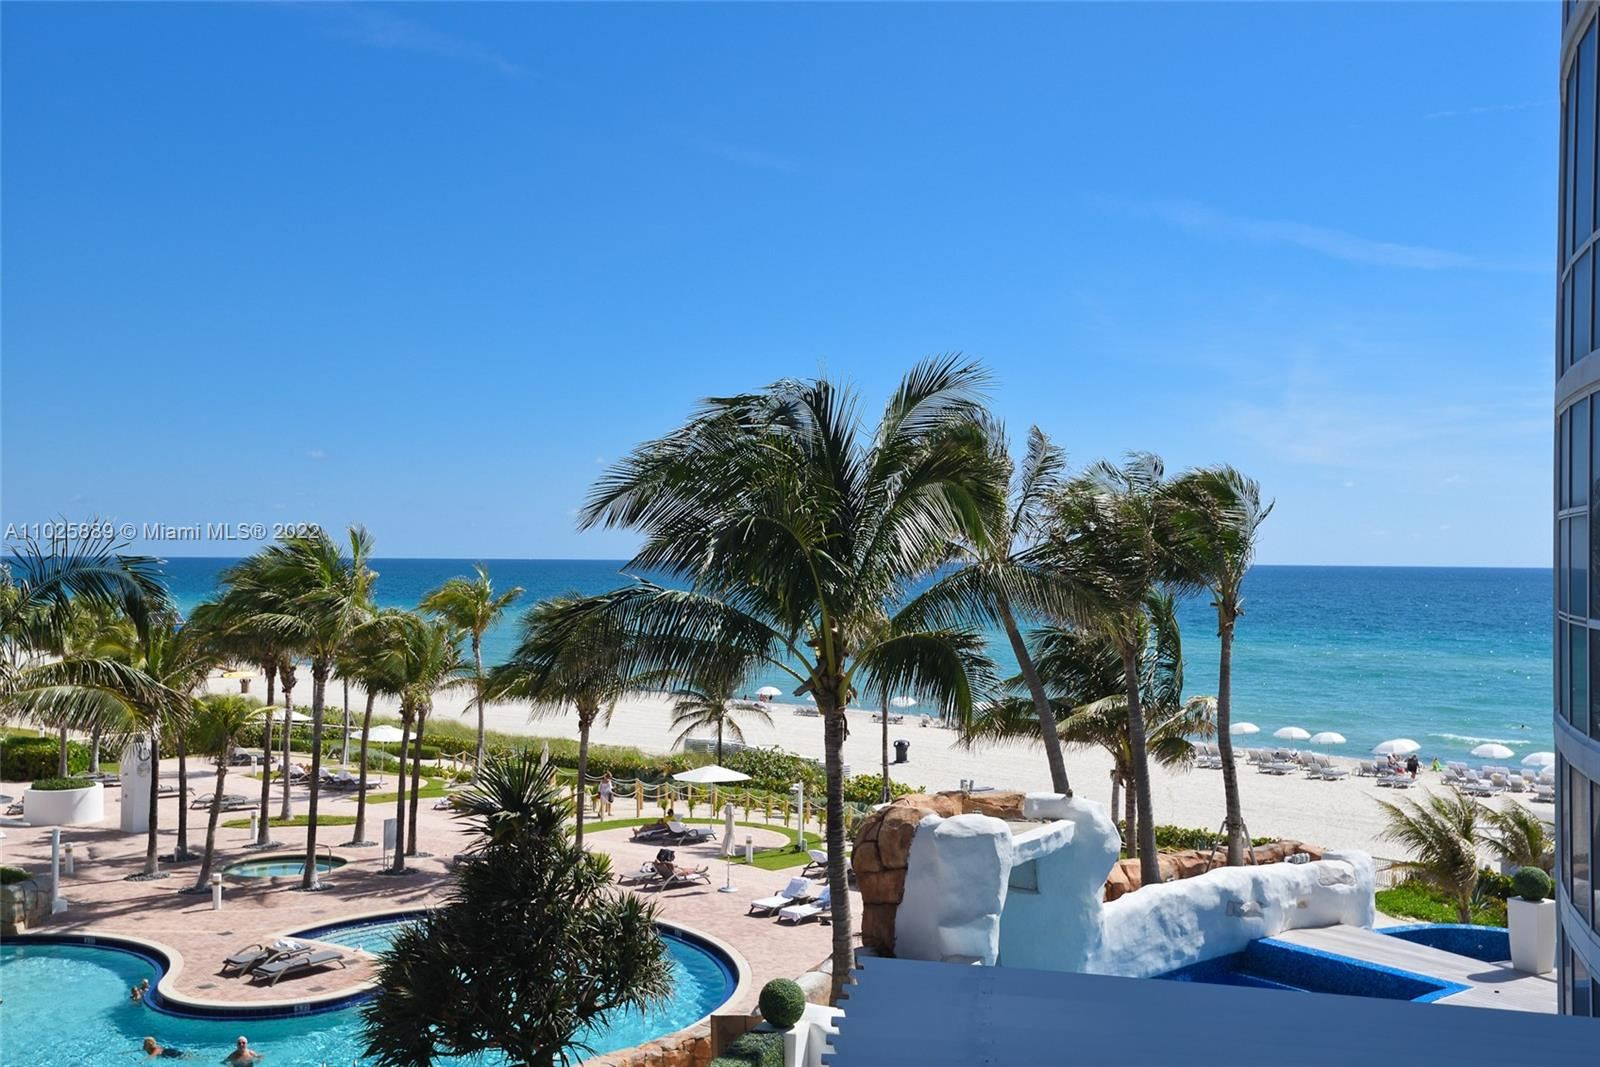 18101 Collins Ave #508, Sunny Isles, FL 33160 - #: A11025889